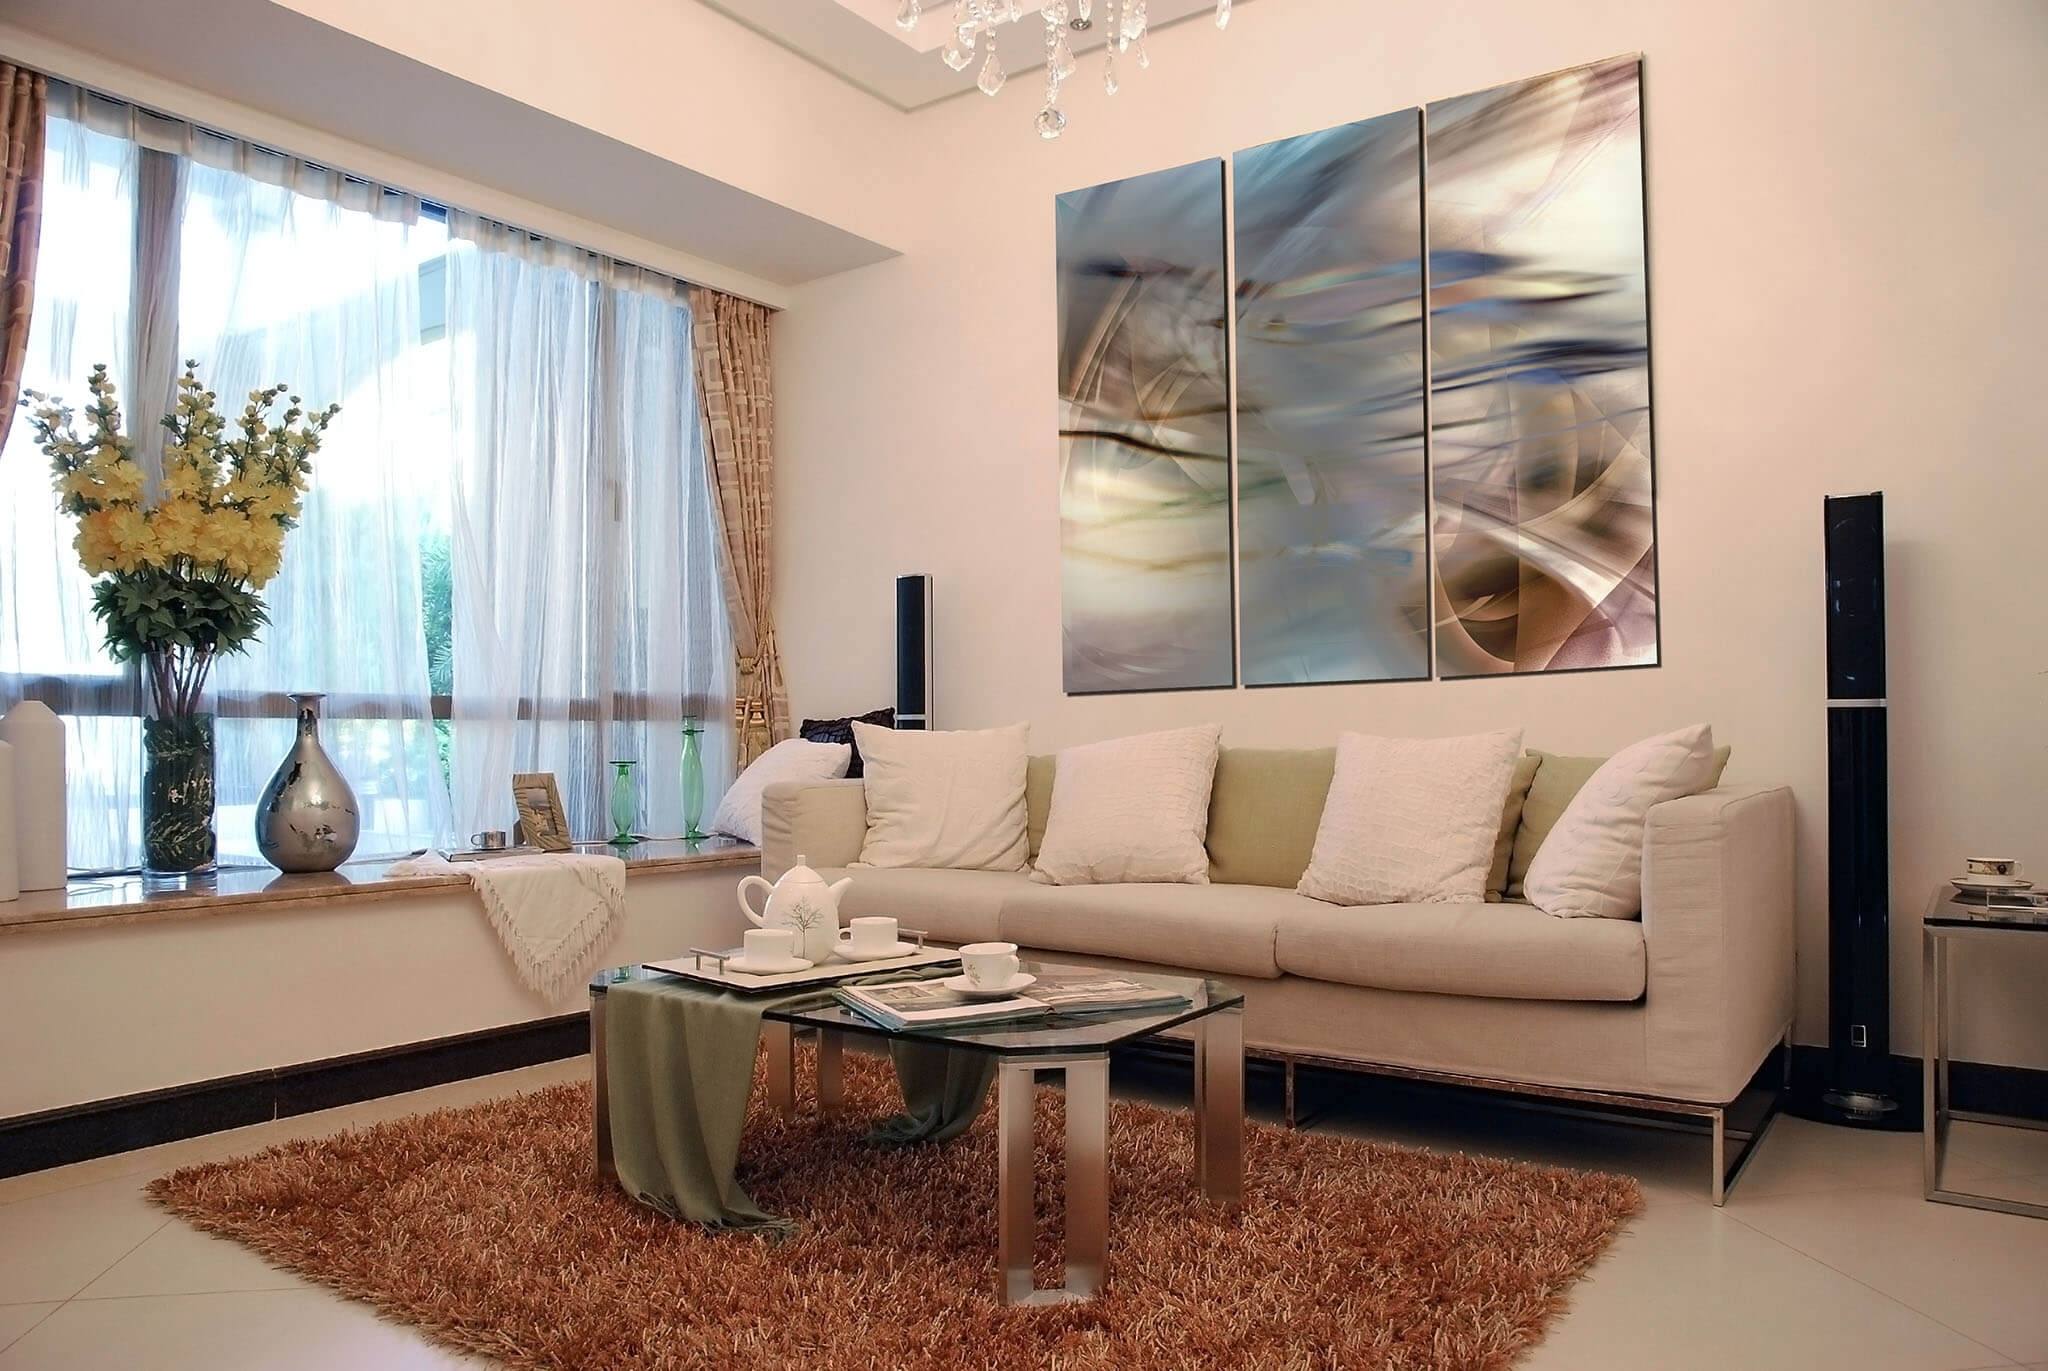 Explore Wall Art For Living Room Ideas For Your Home – Interior Within Recent Framed Wall Art For Living Room (Gallery 6 of 20)